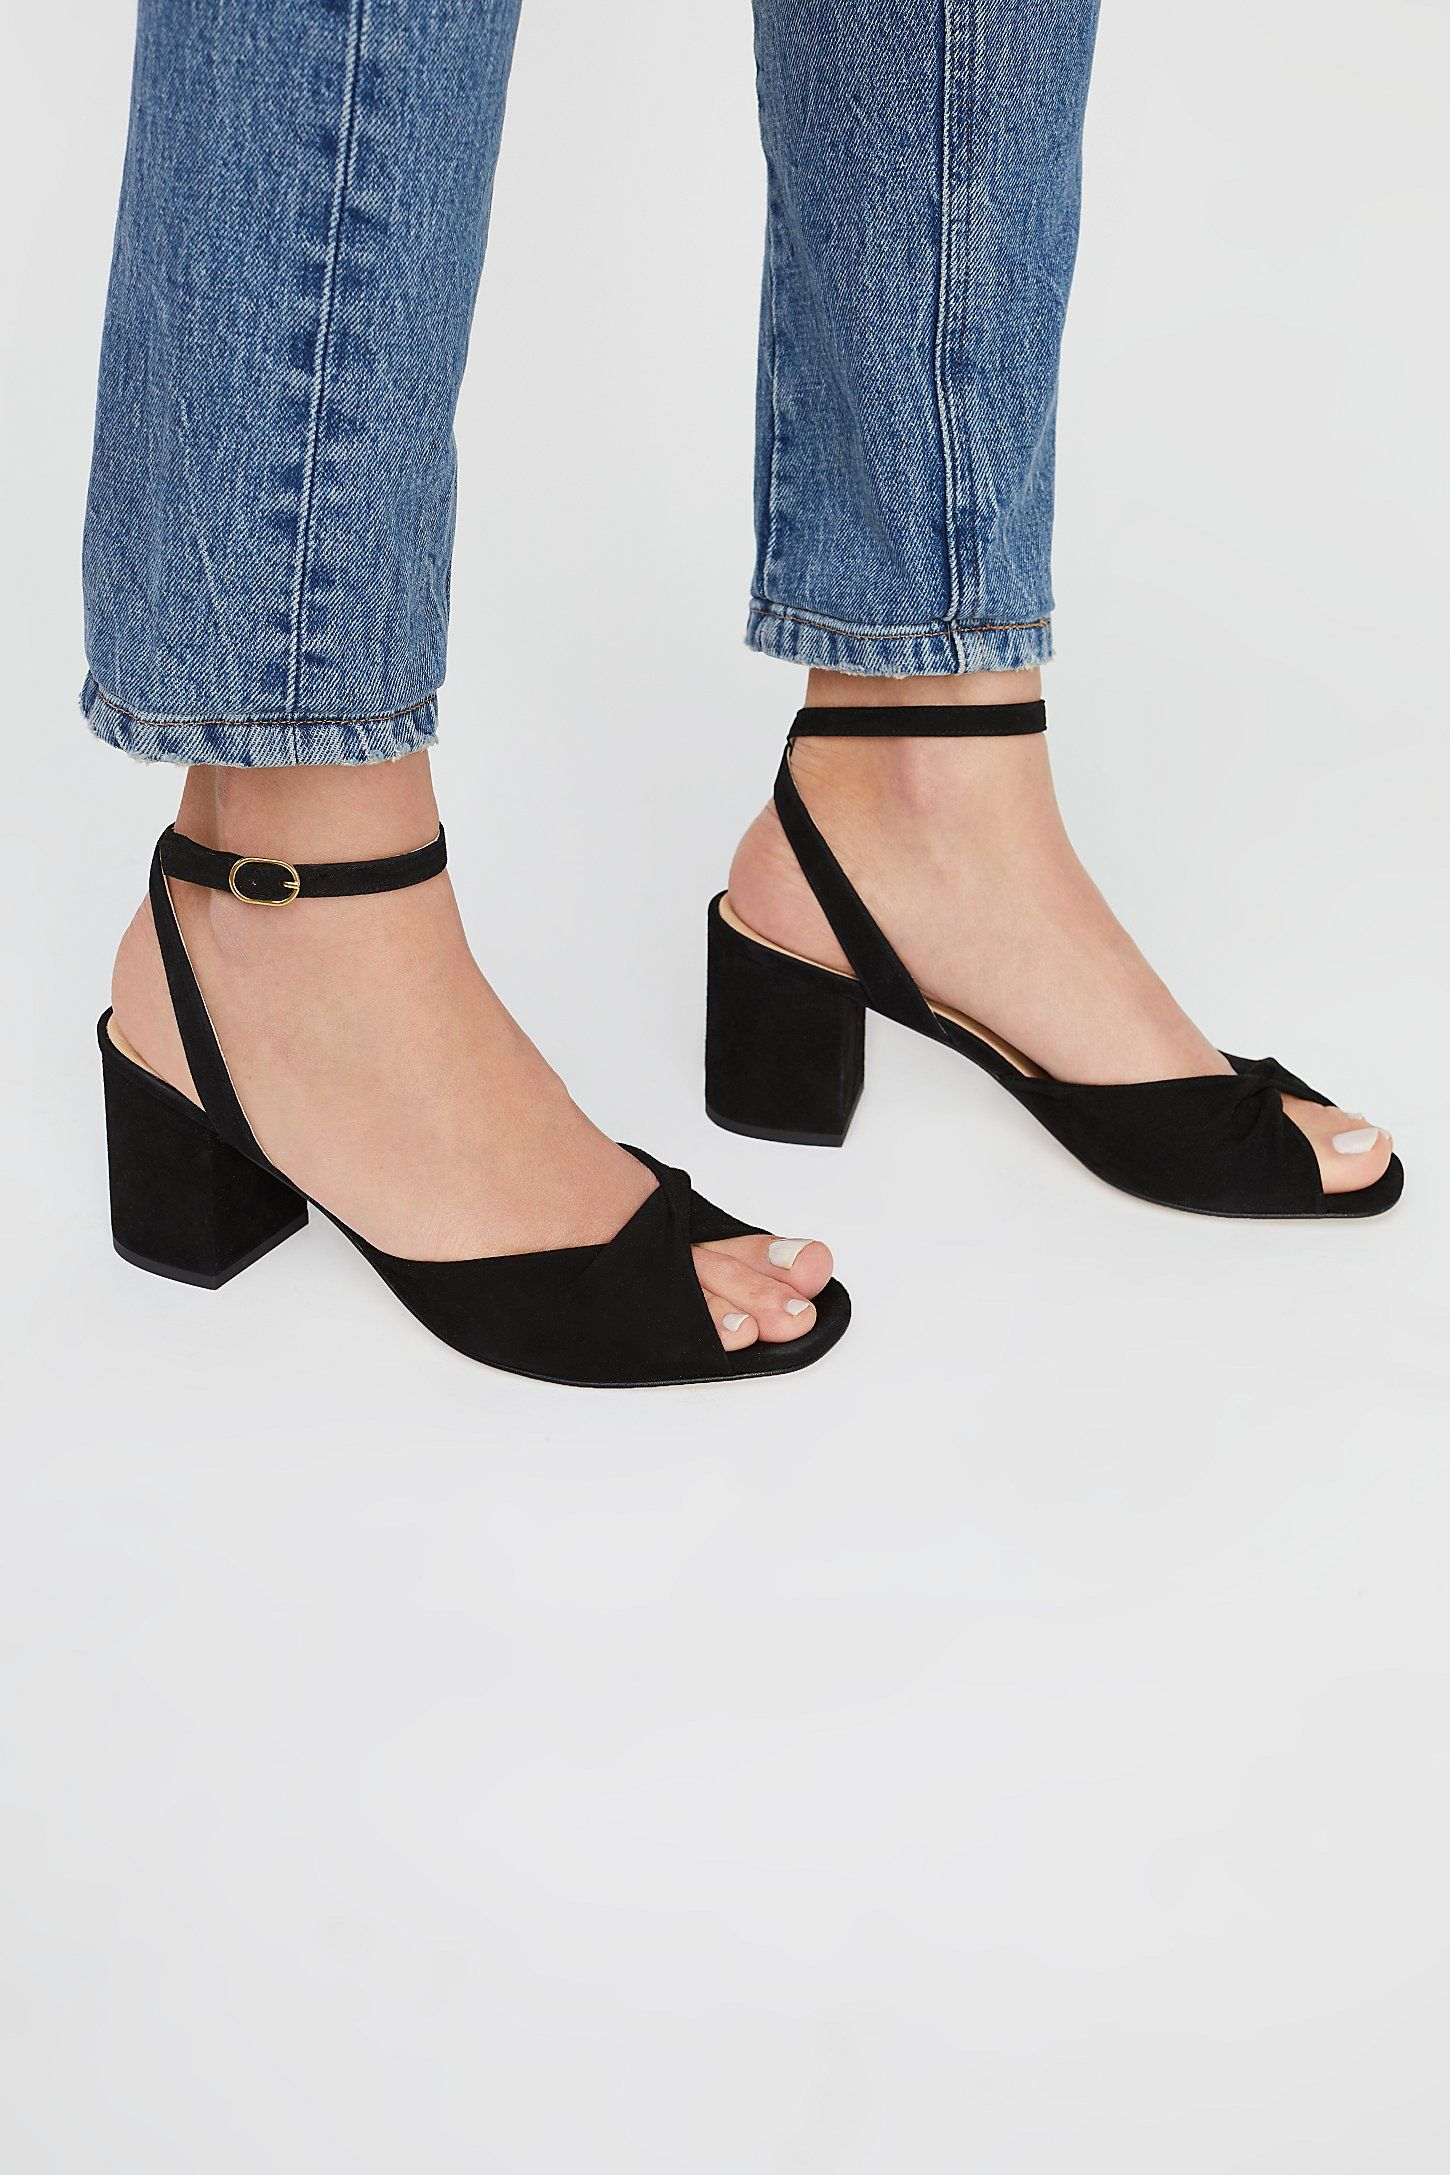 picture Block Heels to Shop (Because Everyone Should Own a Pair of BlockHeels)